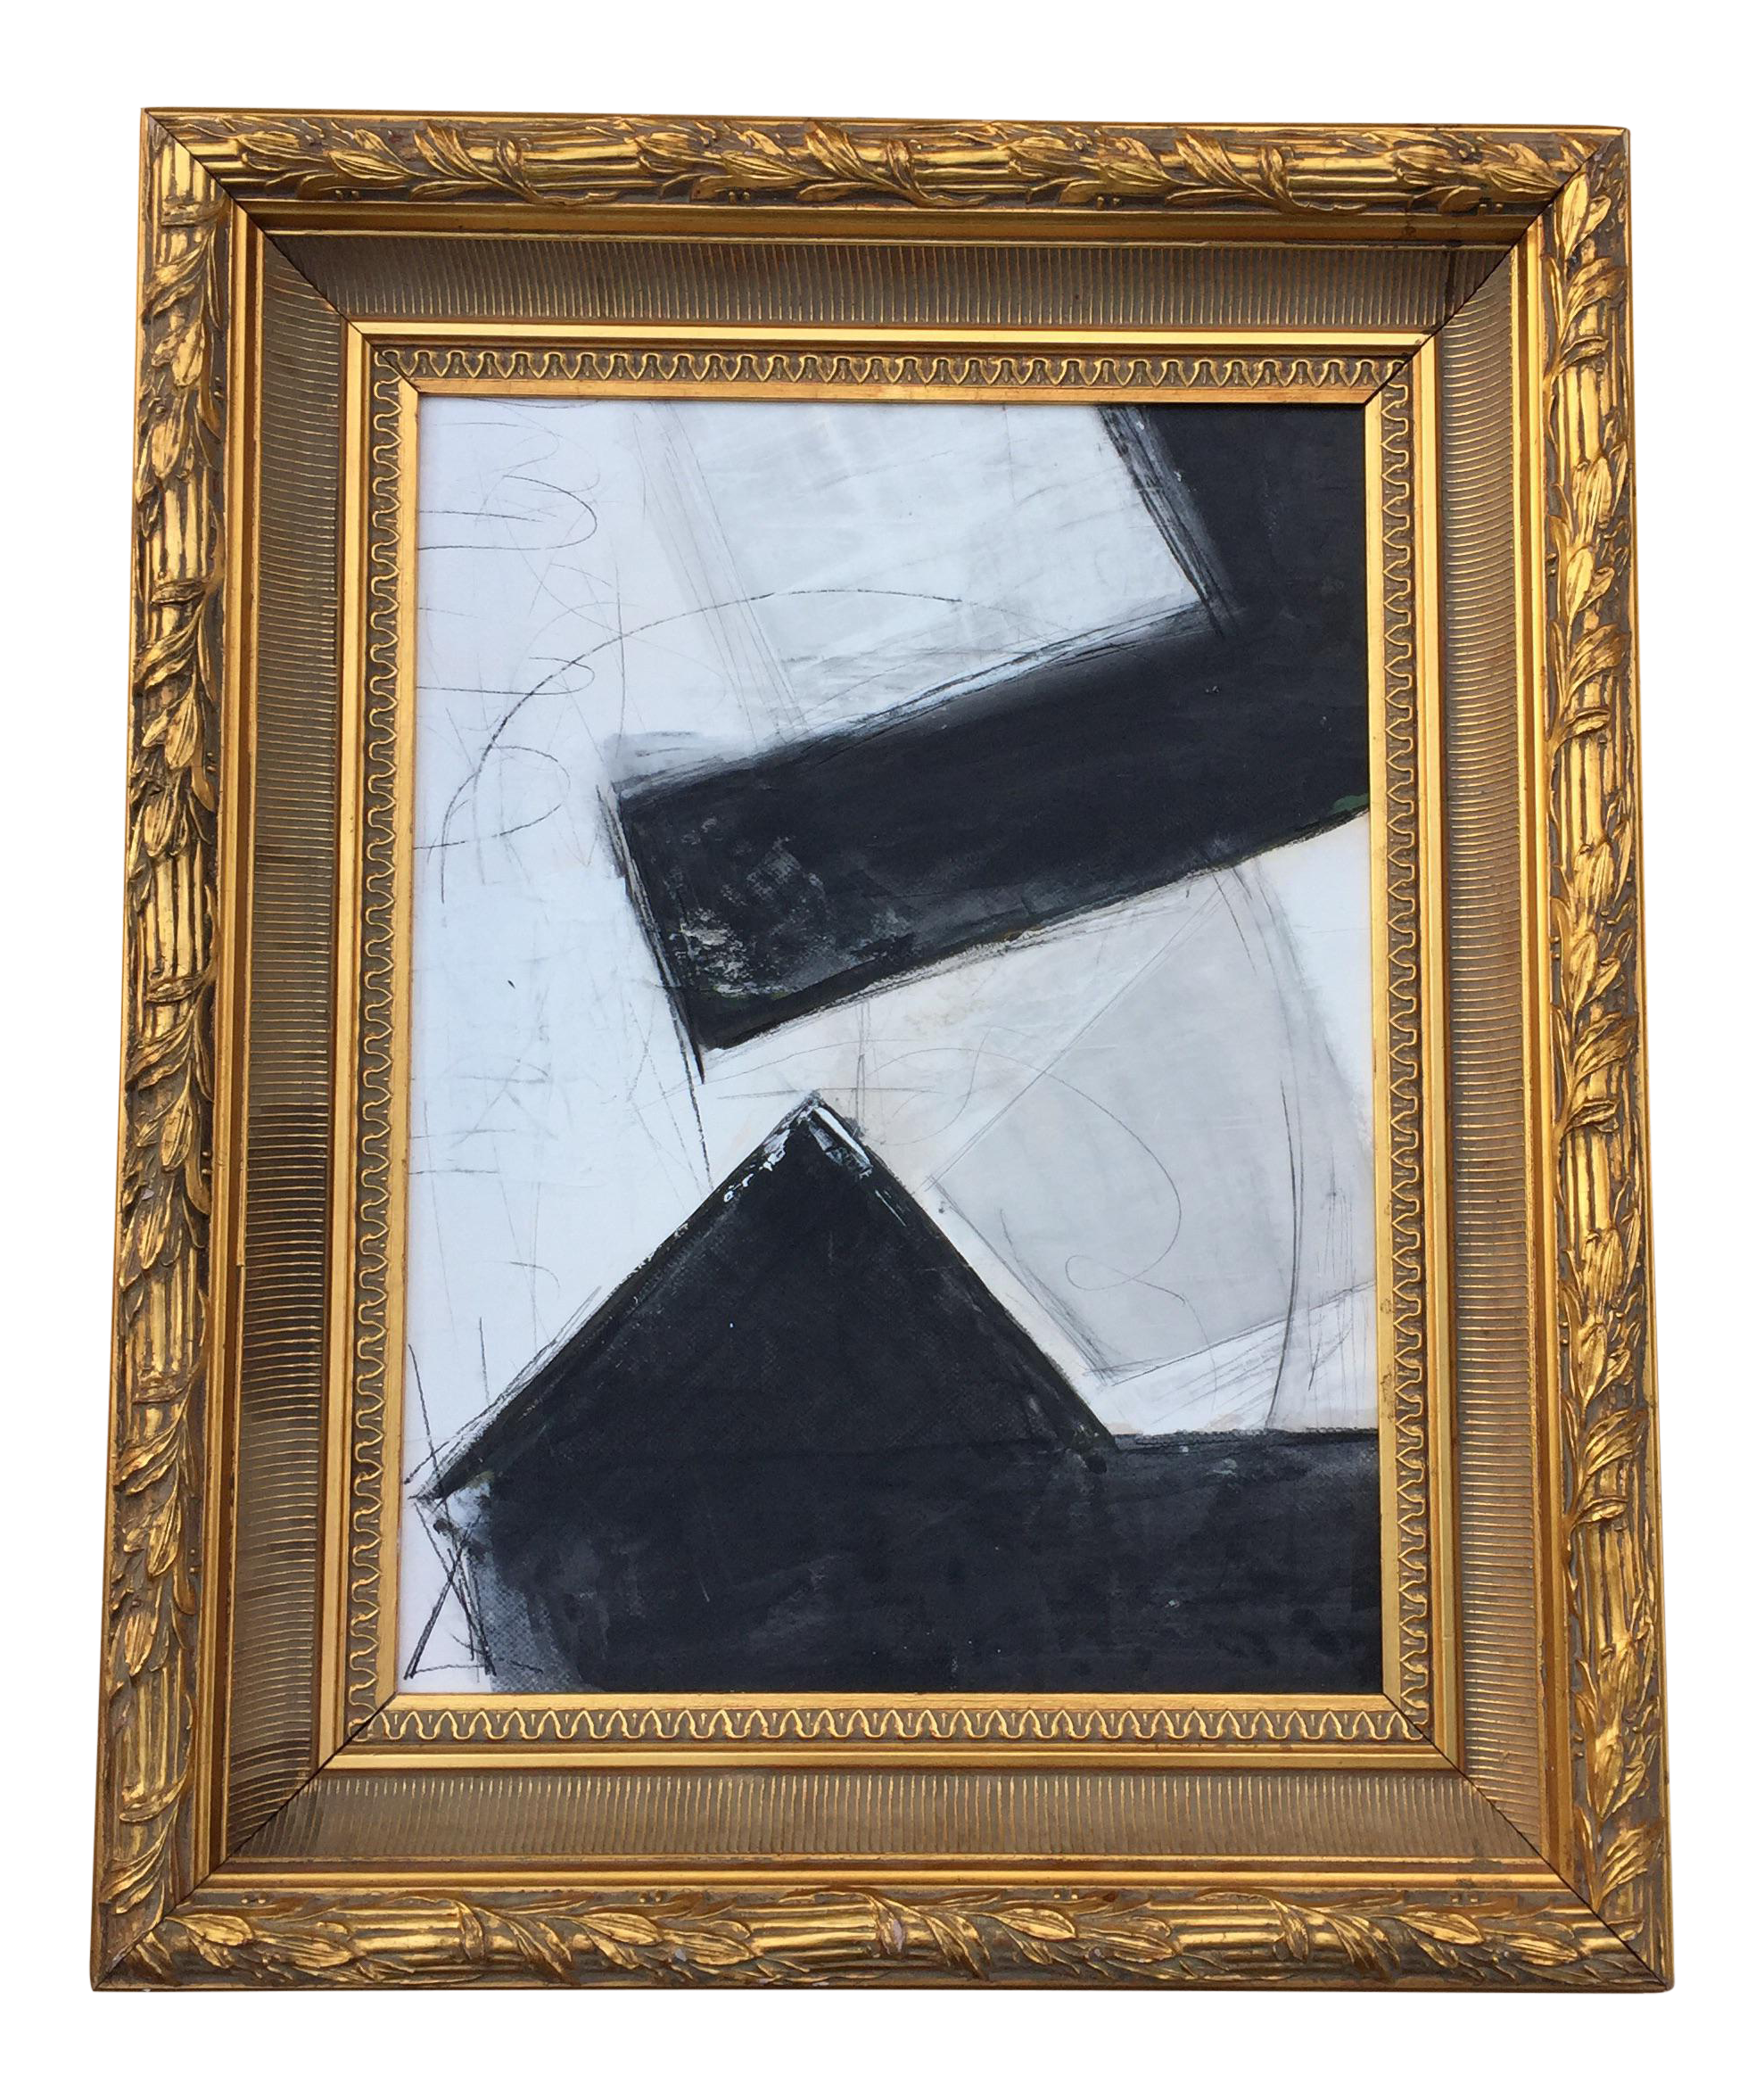 Abstract Black & White Painting in Gold Frame